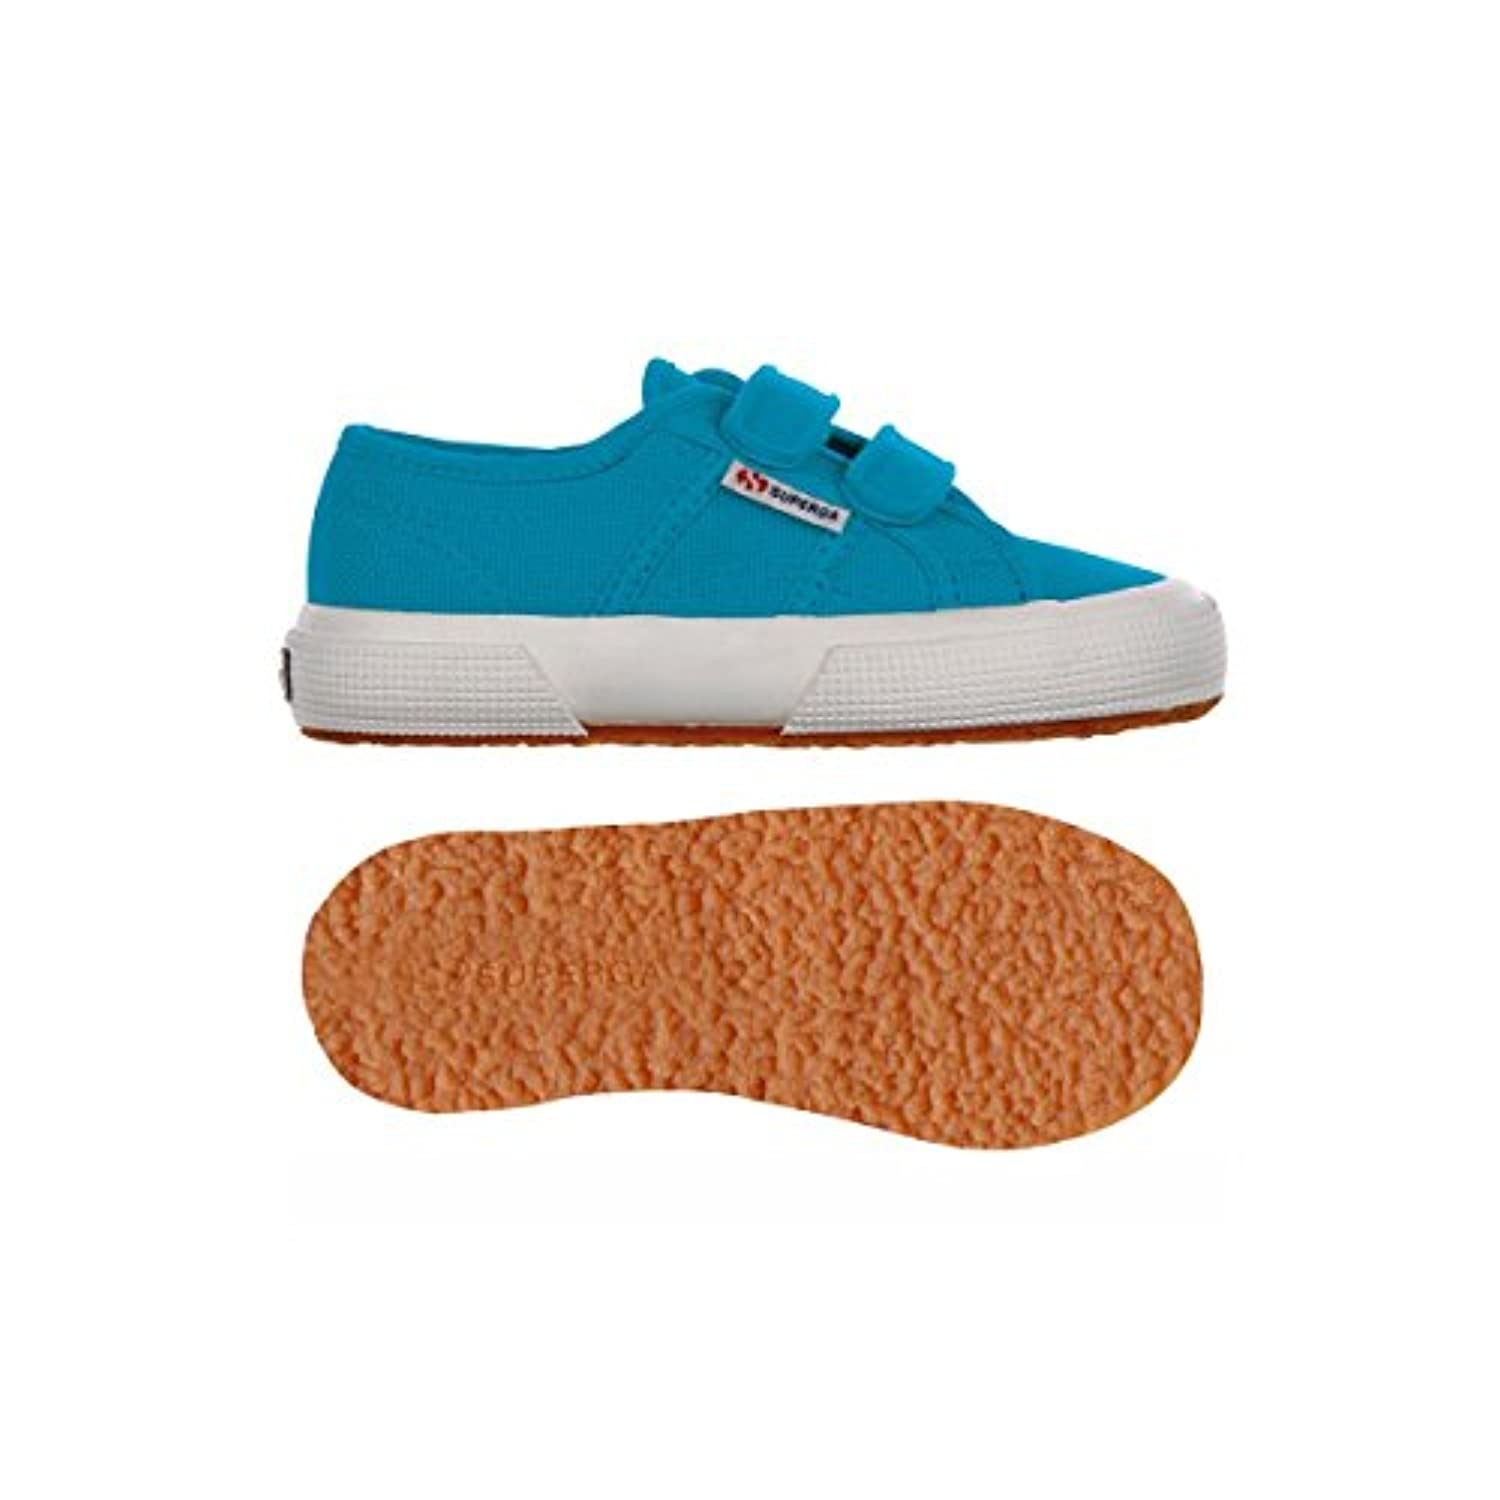 Superga 2750 Jvel Classic, Unisex Kids' Low-Top Sneakers, Blue (Sea Blue), 1 Child UK (33 EU)